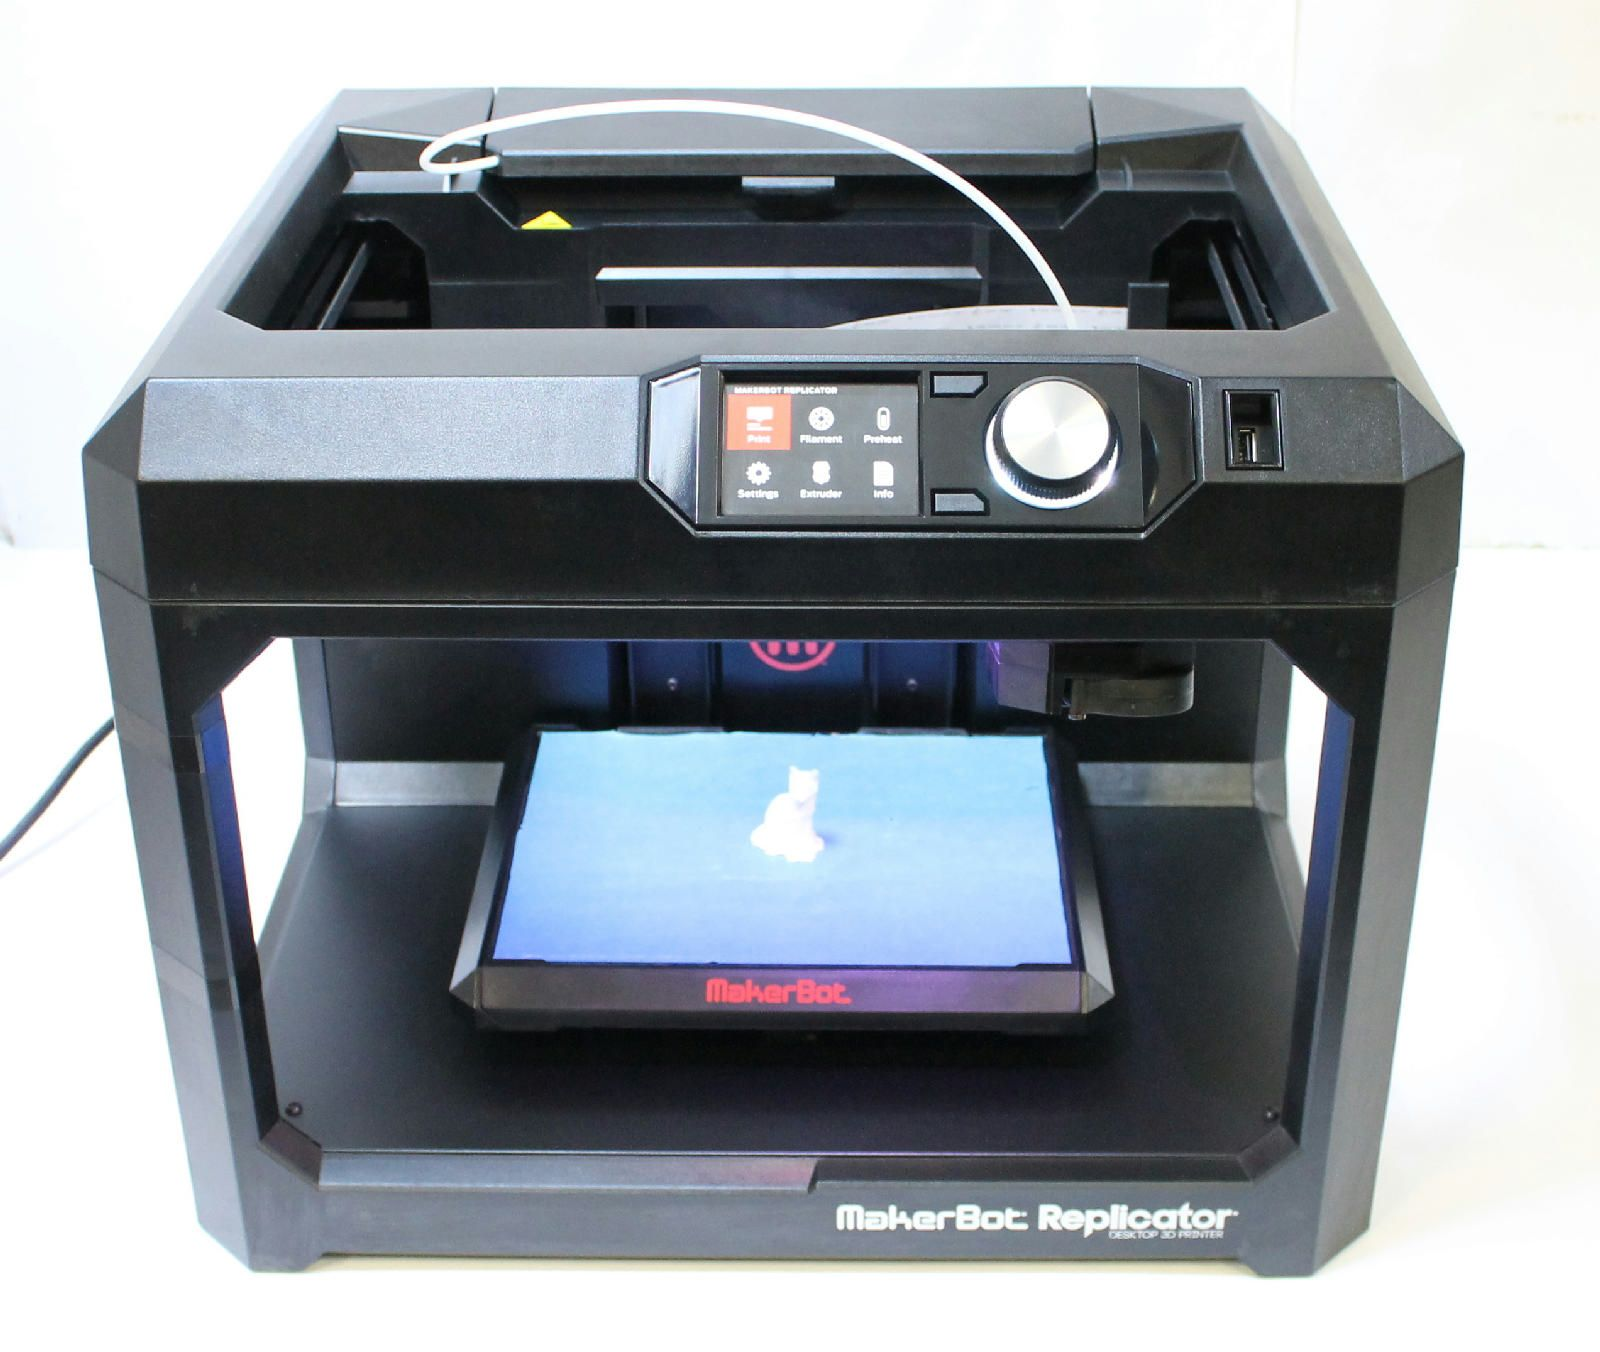 MakerBot Replicator Fifth Gen Desktop 3D Printer MP05825